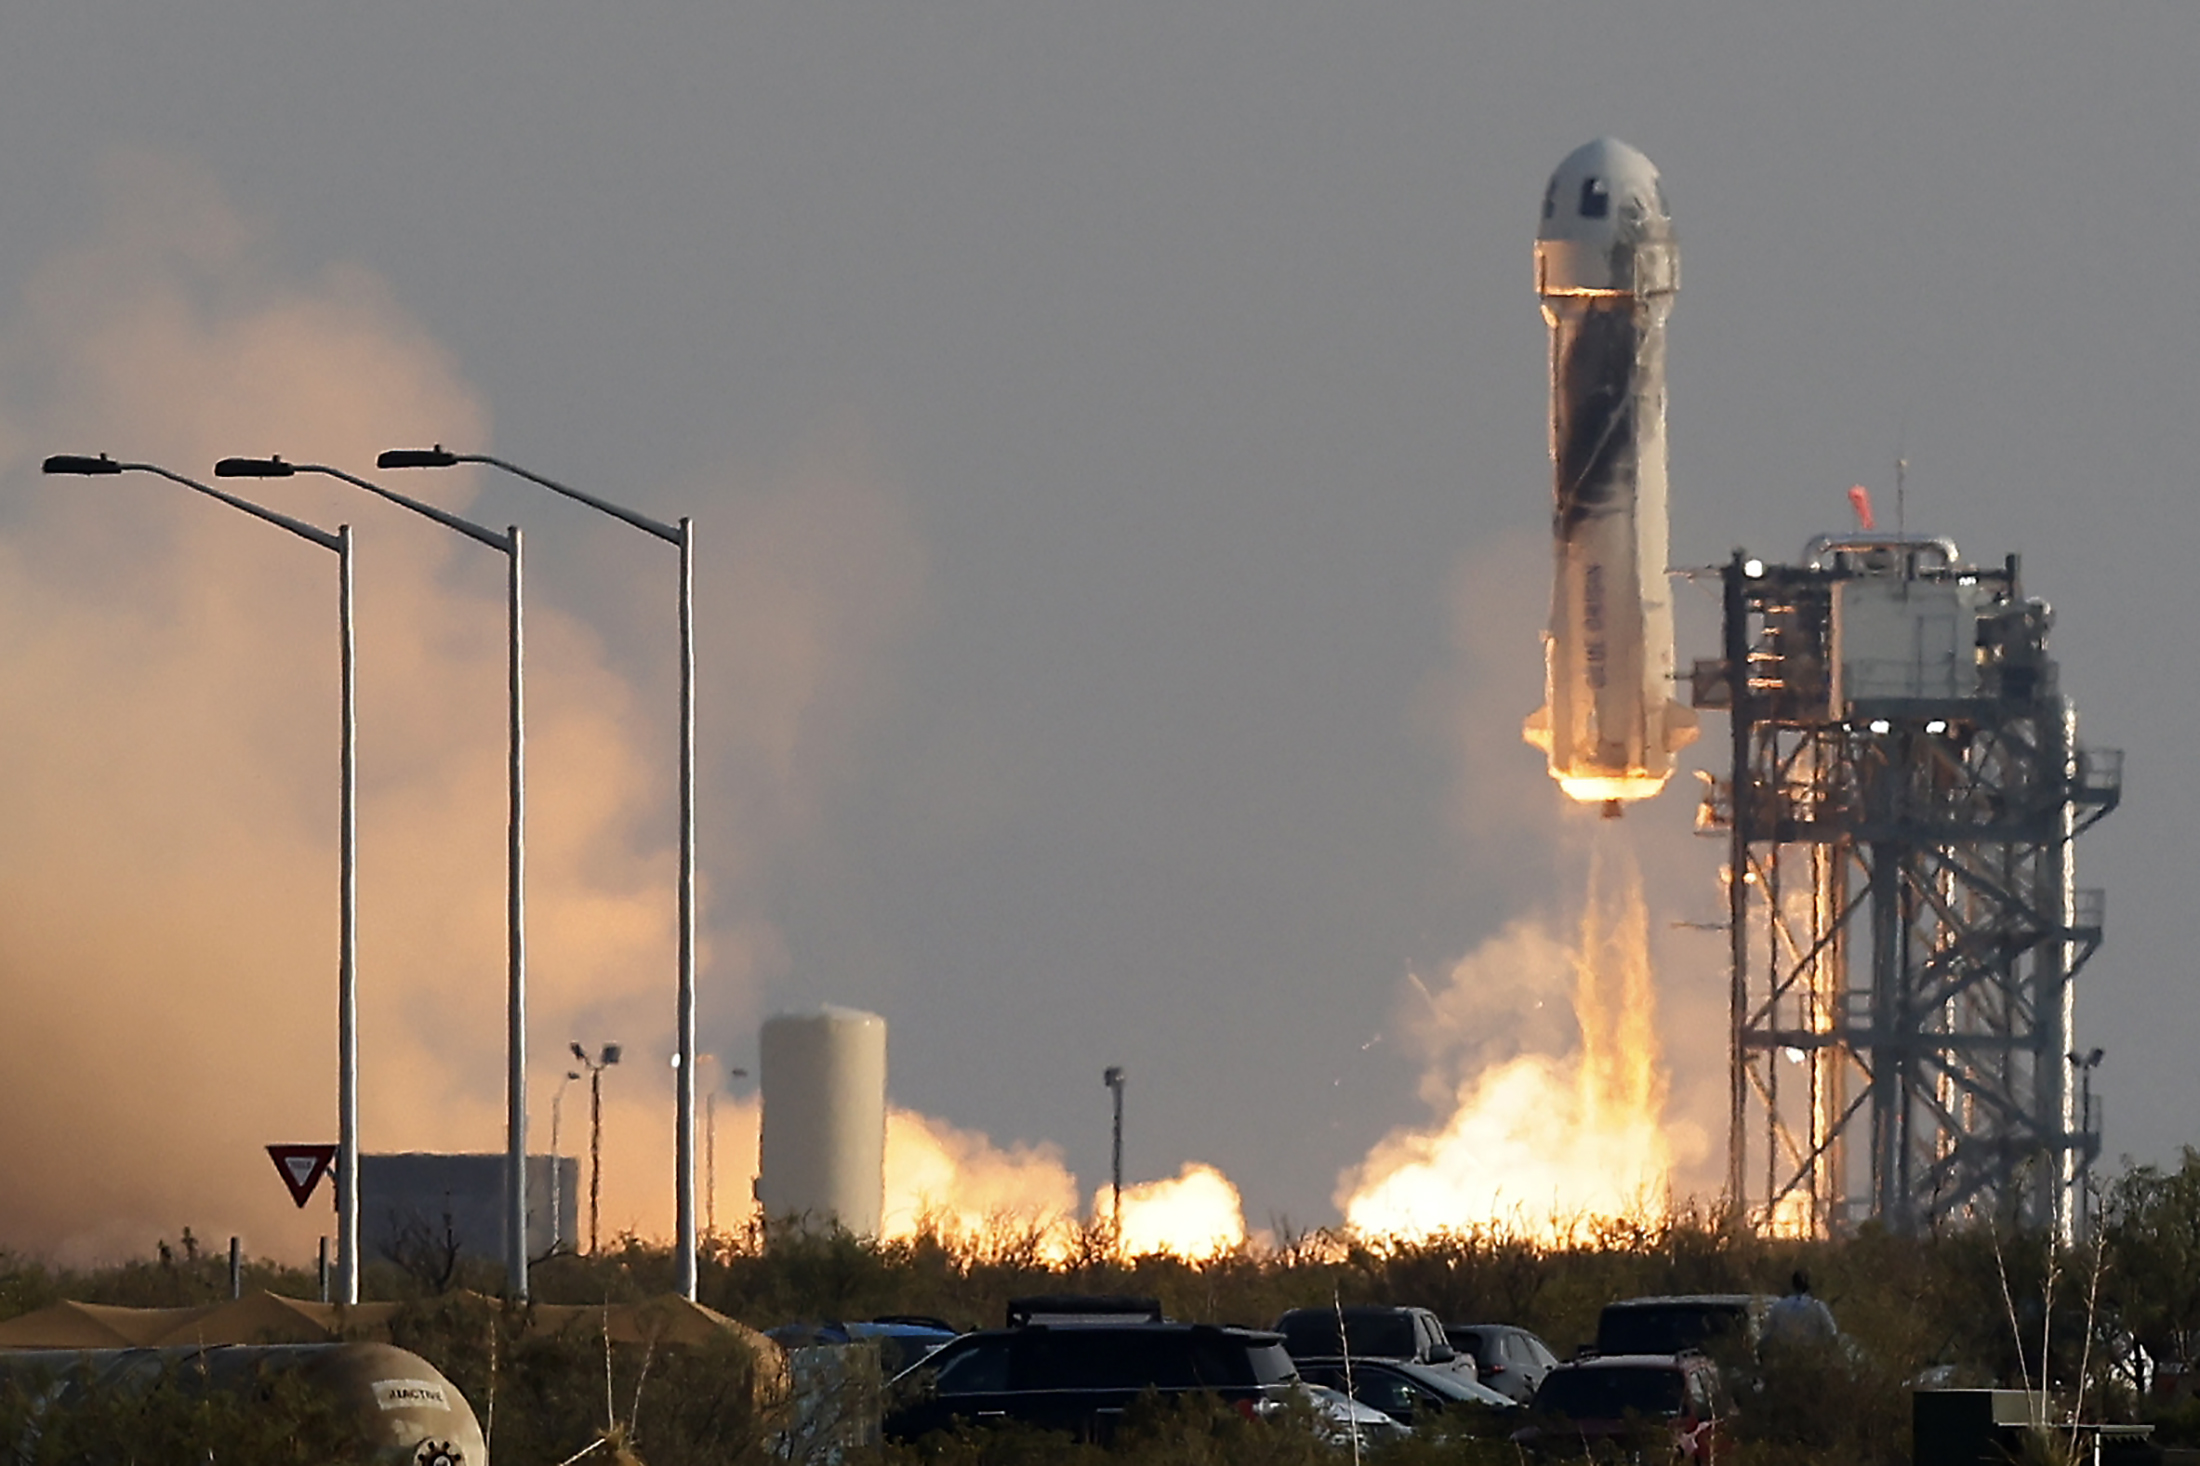 PODCAST – Tuesday, July 20: Jeff Bezos Space Launch; Dire Straits Guitarist Jack Sonni